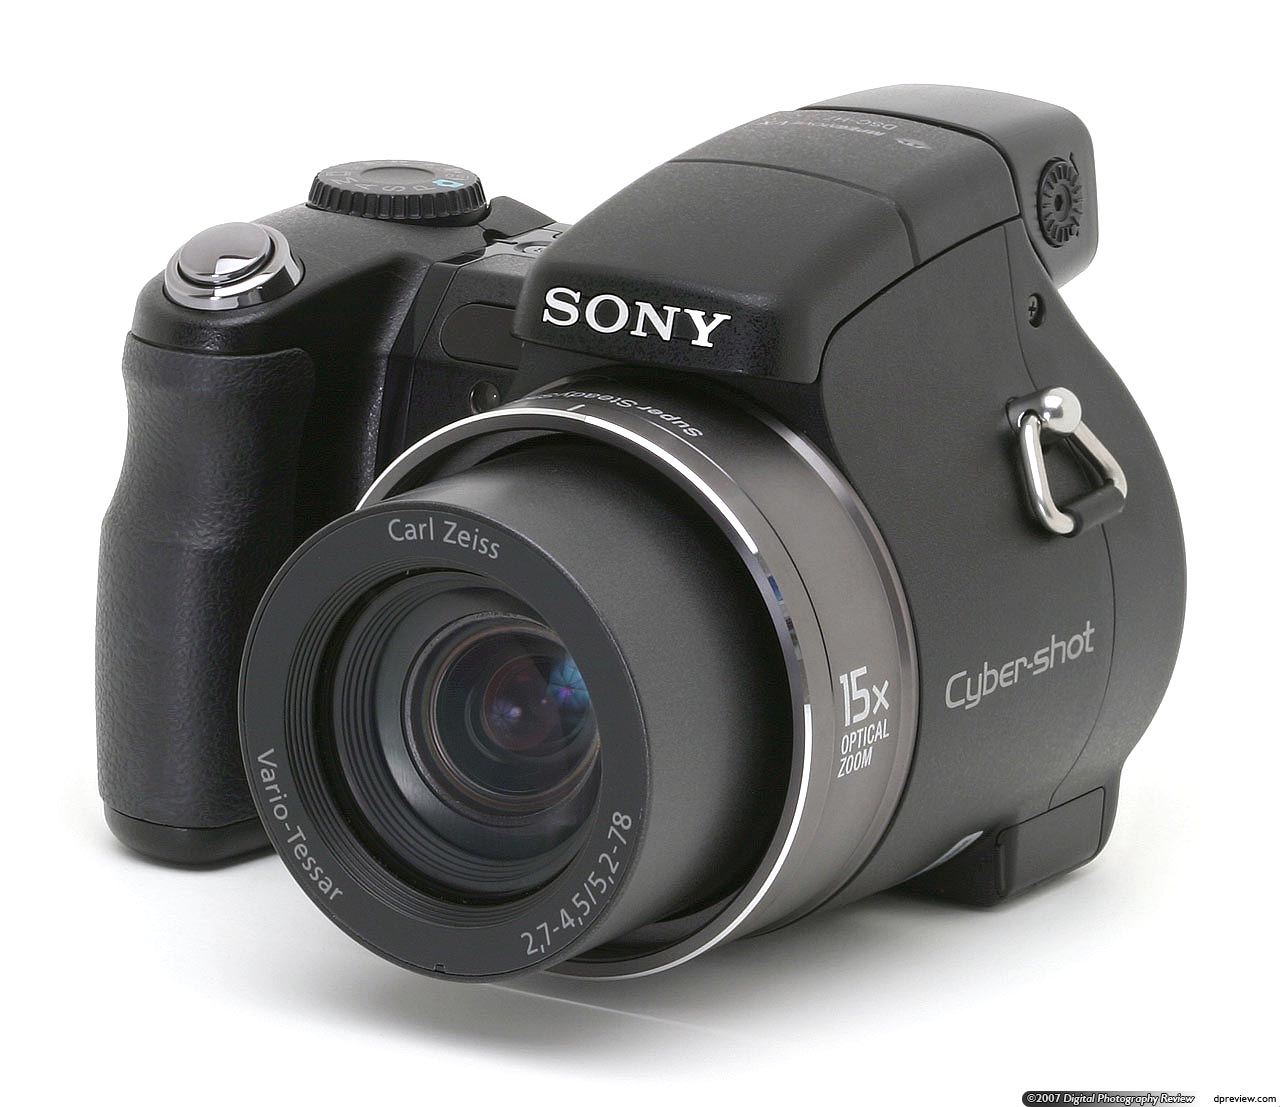 sony cyber shot dsc h7 review digital photography review rh dpreview com sony dsc h70 manual sony dsc-h7 instruction manual